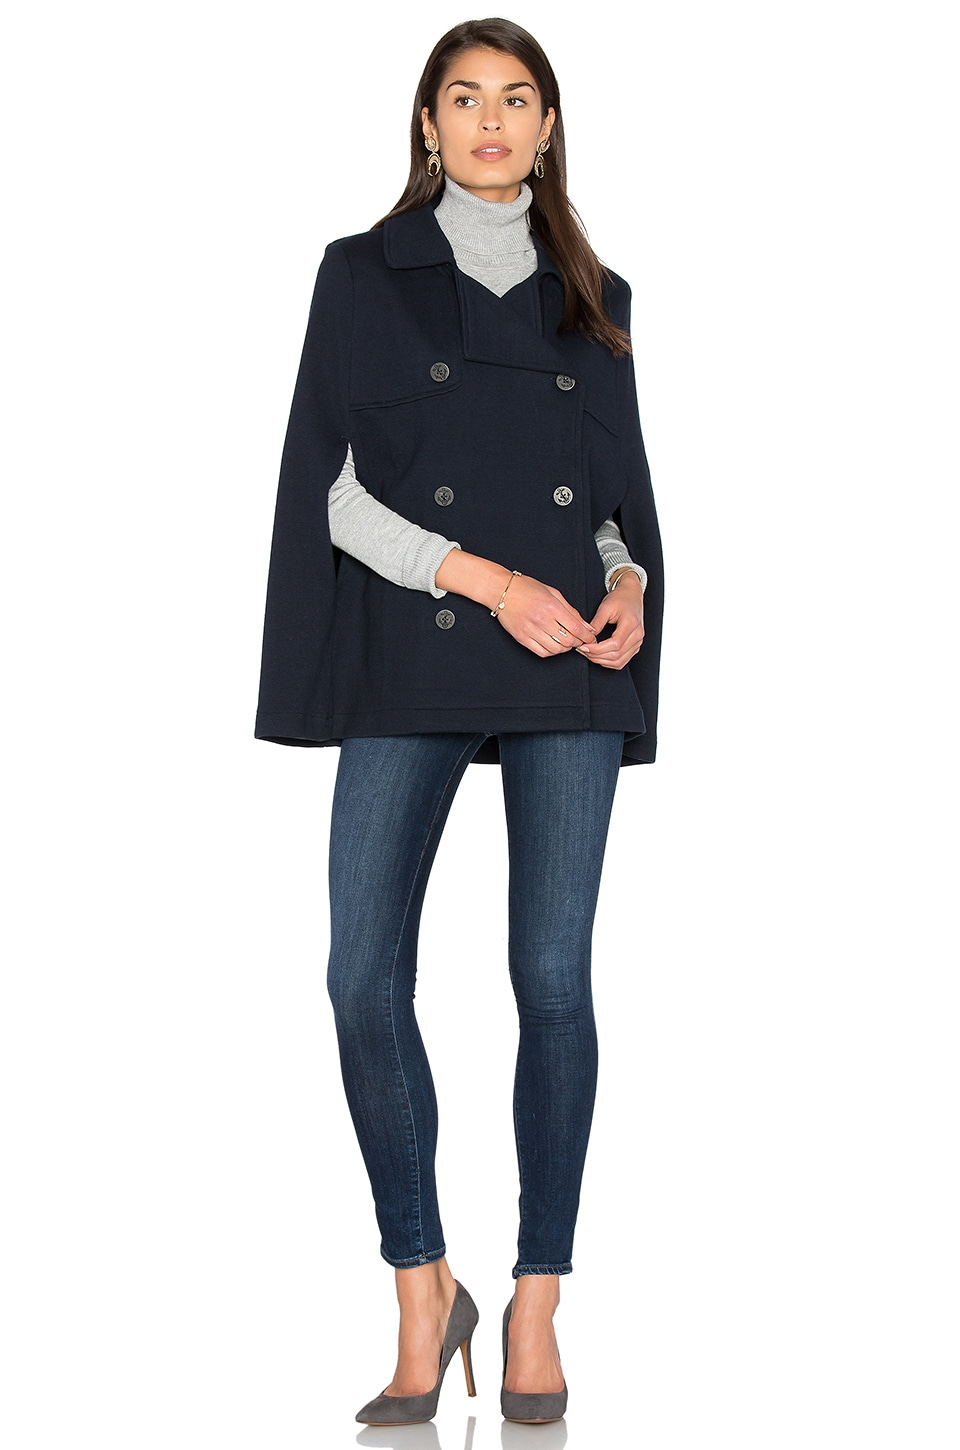 525 america Poncho Peacoat in Classic Navy